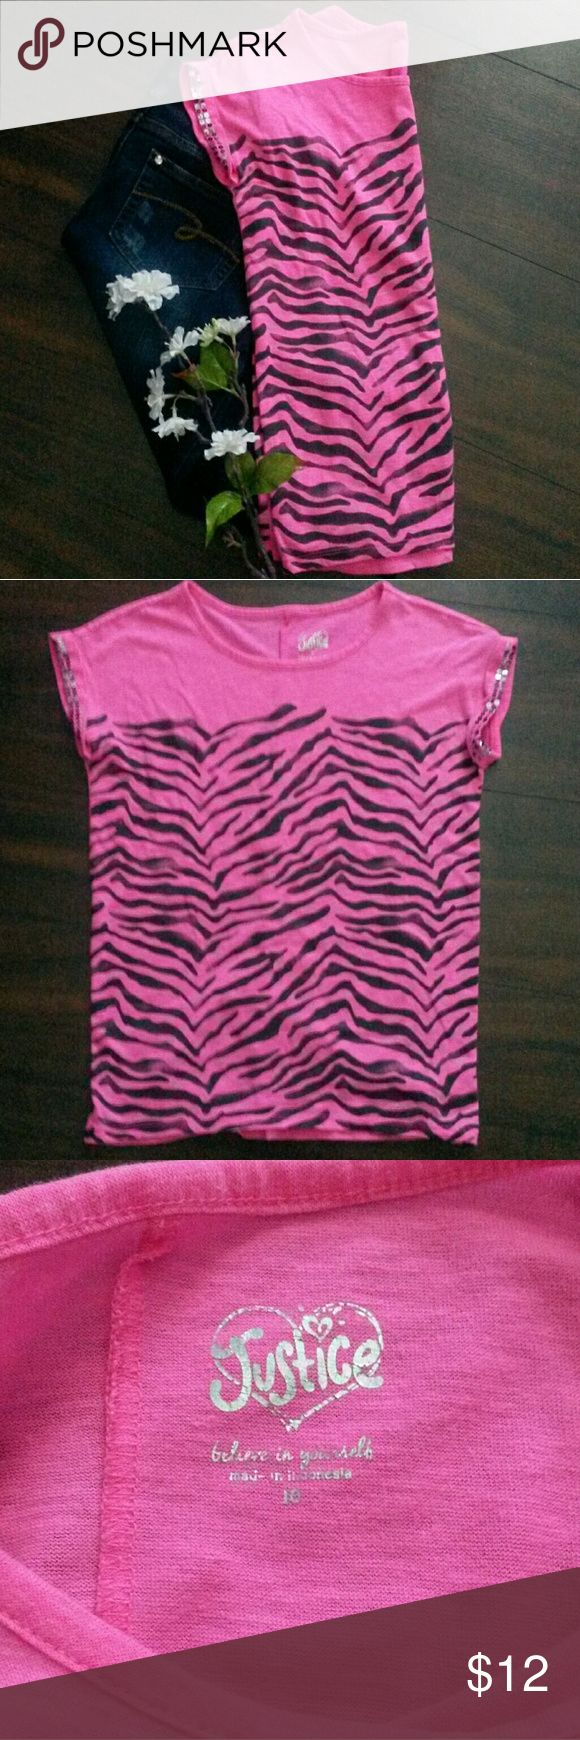 Girls pink shirt Feel feisty in this hot pink shirt with zebra stripes and sequined sleeves. EUC Justice Shirts & Tops Tees - Short Sleeve